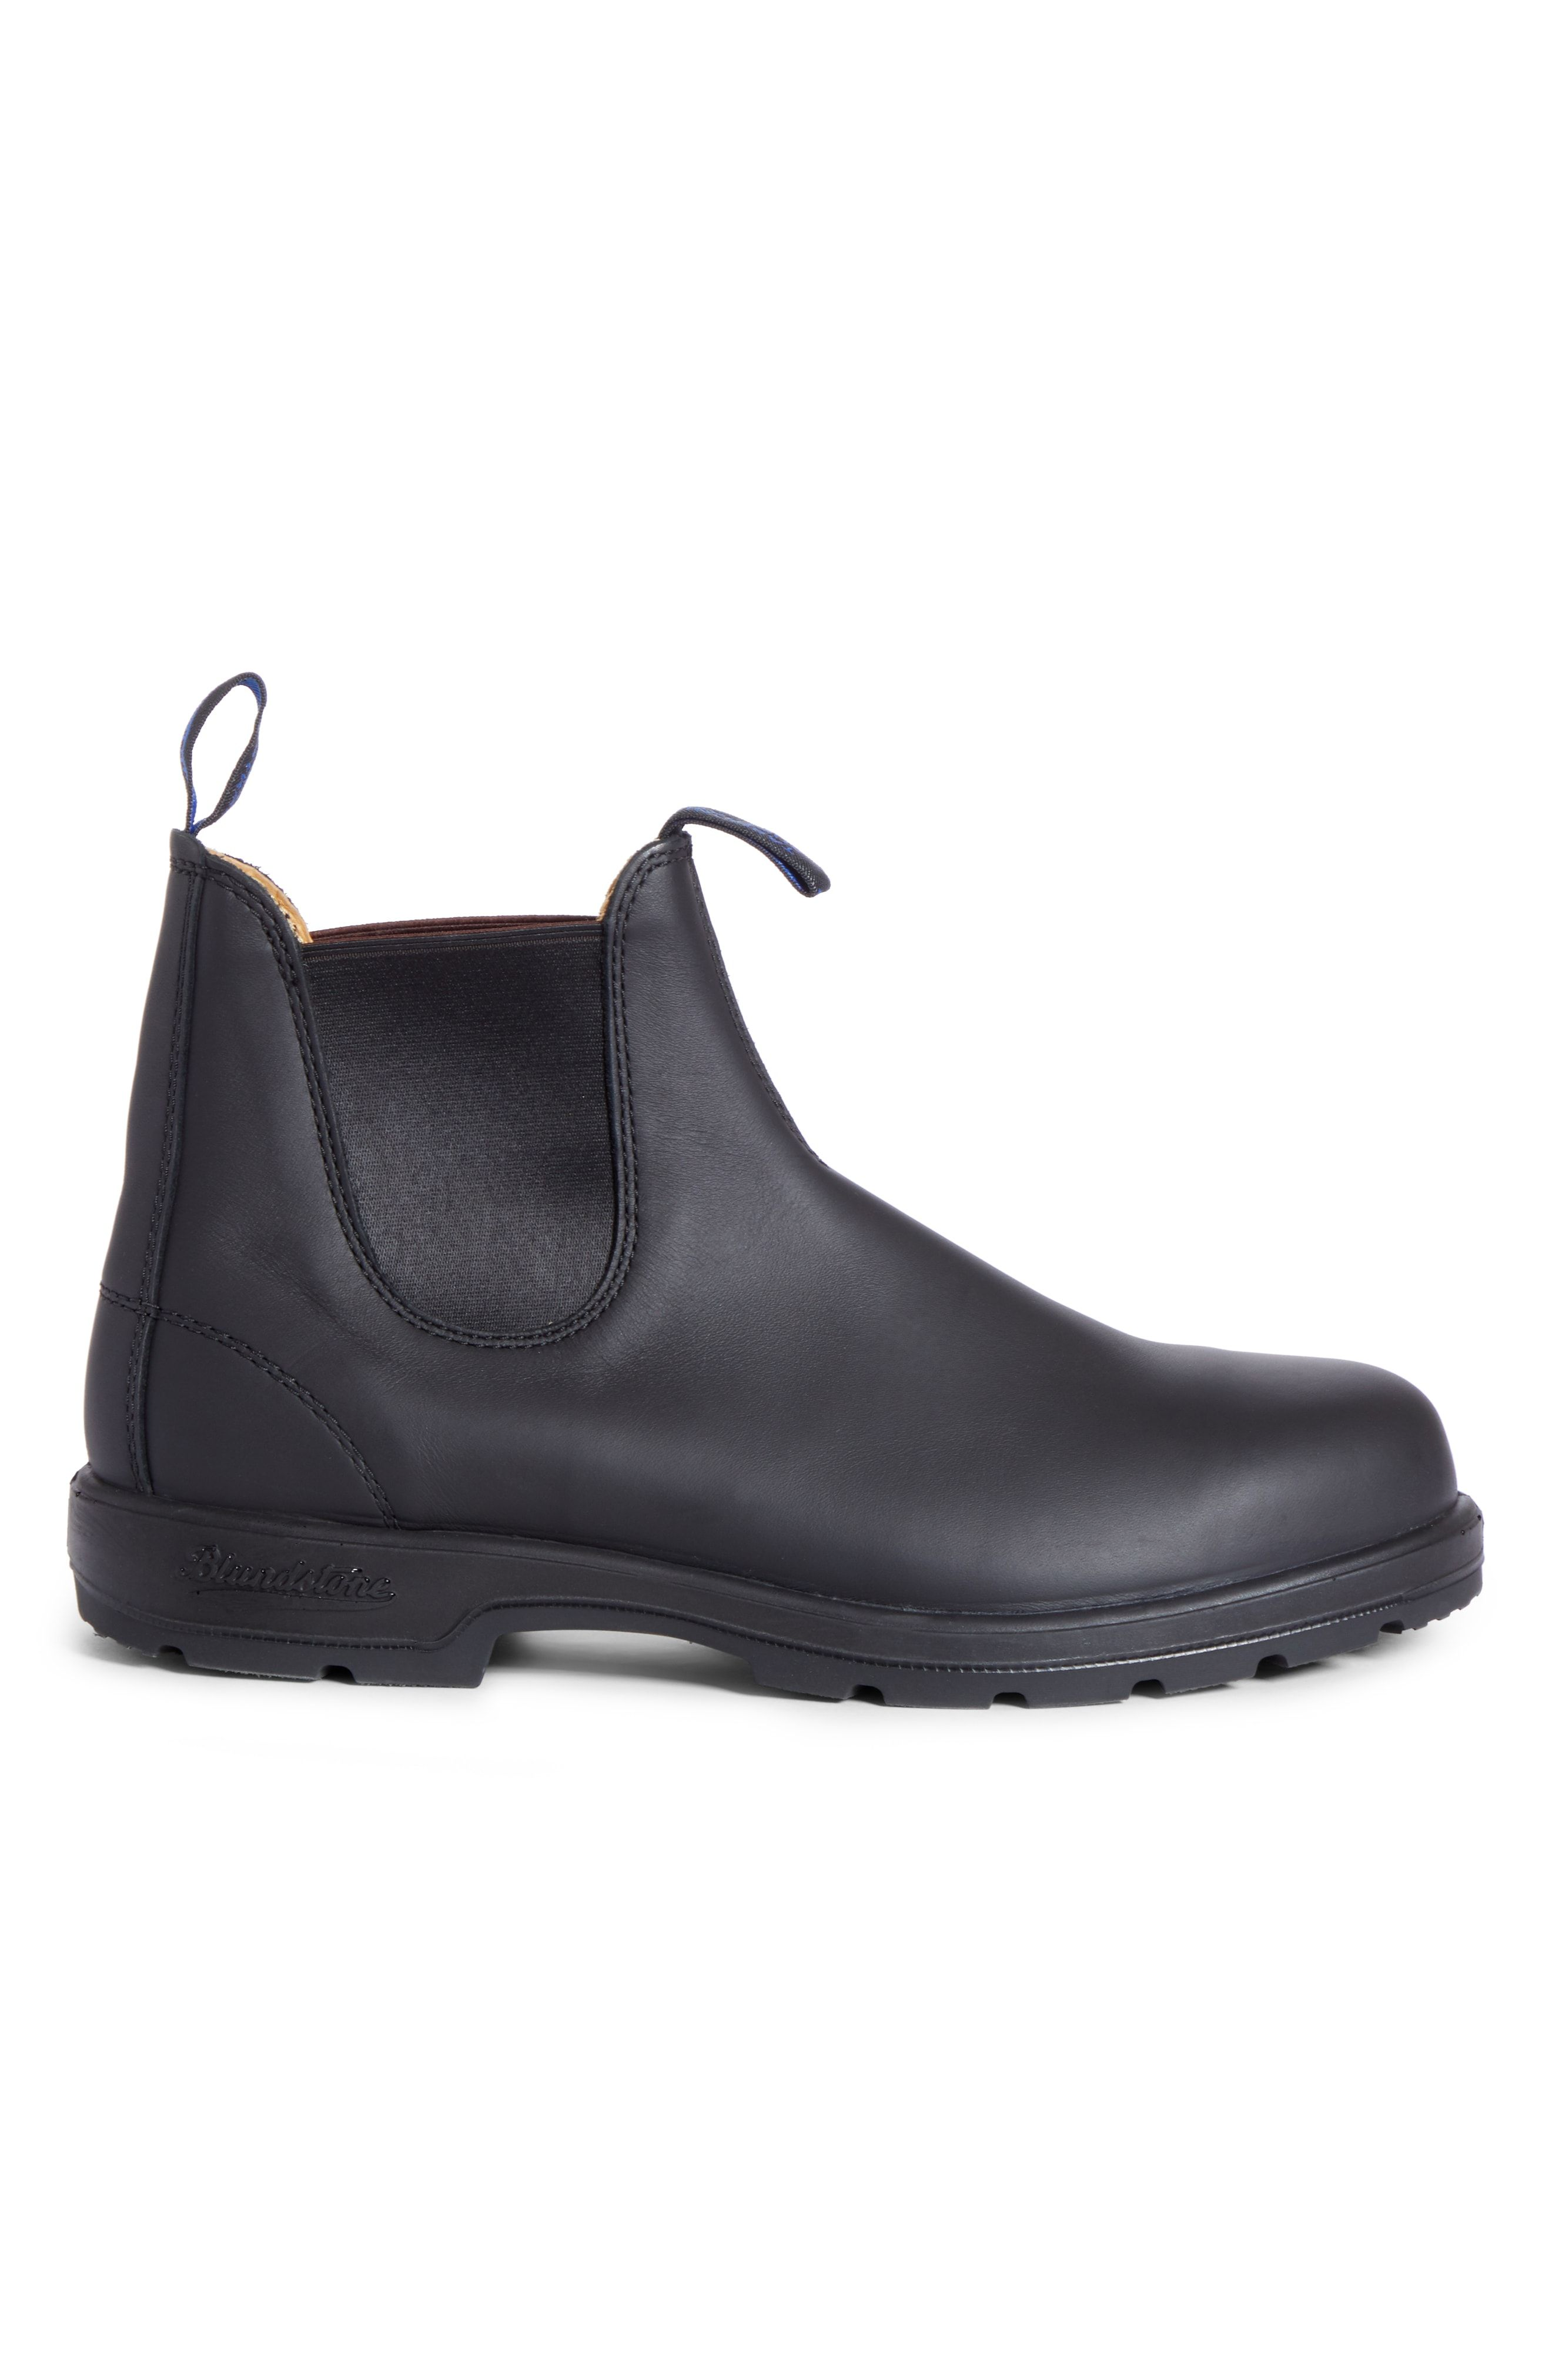 Blundstone Thermal Leather 566 Boot Style Waterproof mIYybfg6v7